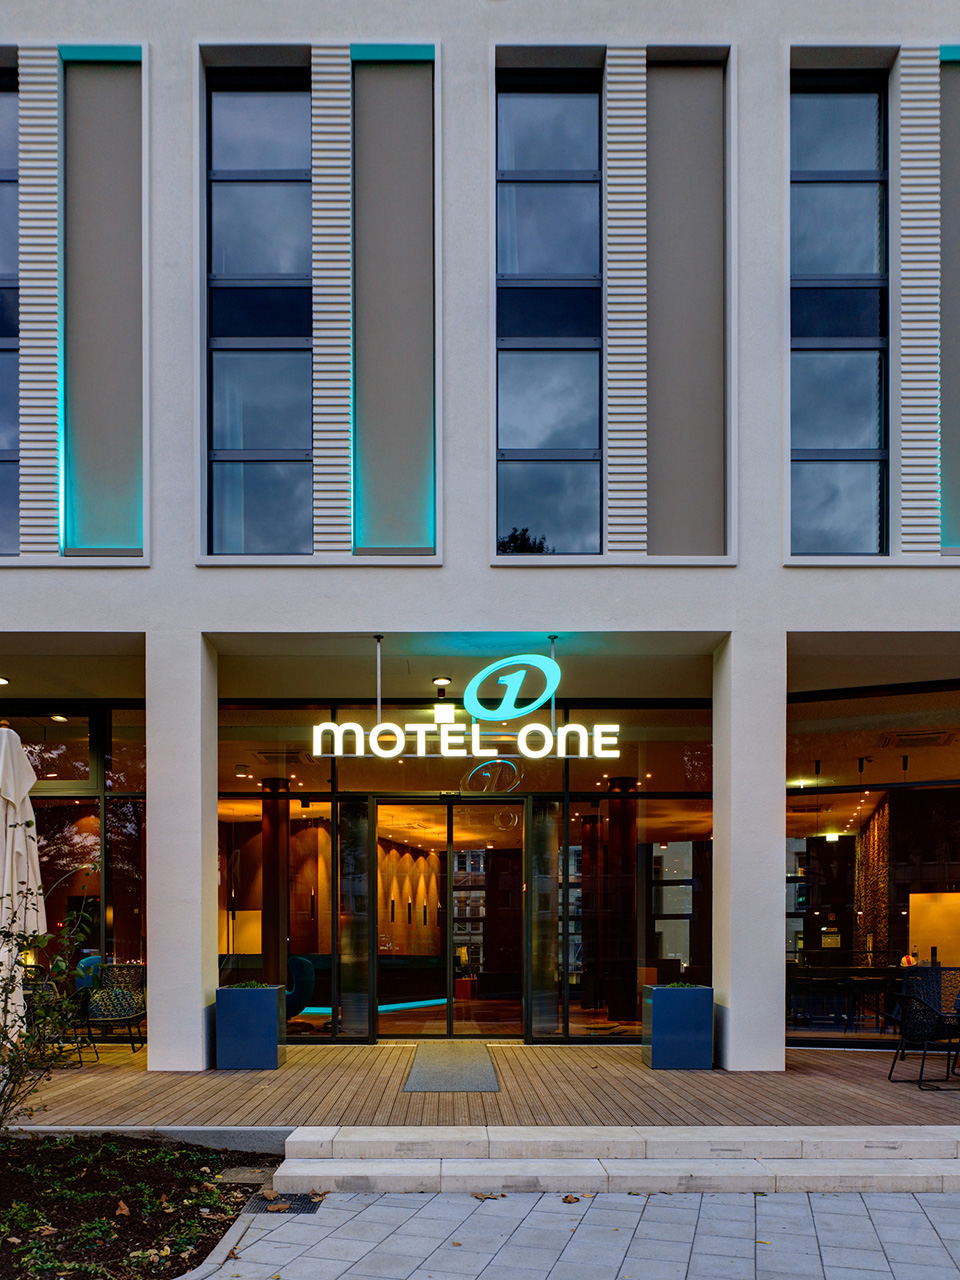 Motel One | FAY Projects GmbH